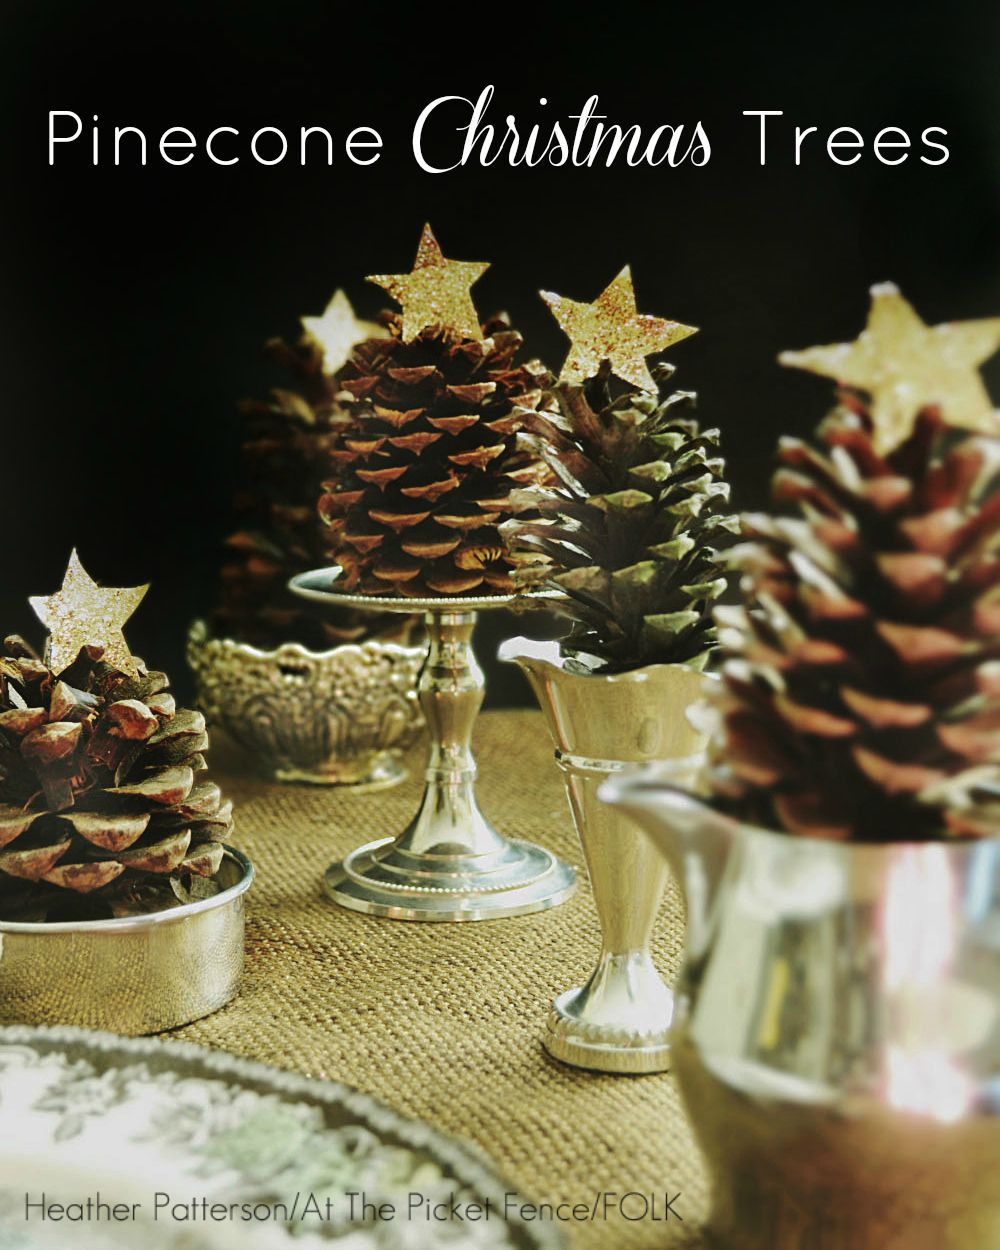 Pine cone christmas trees simplicity at its best for Decorating pine cones for christmas tree